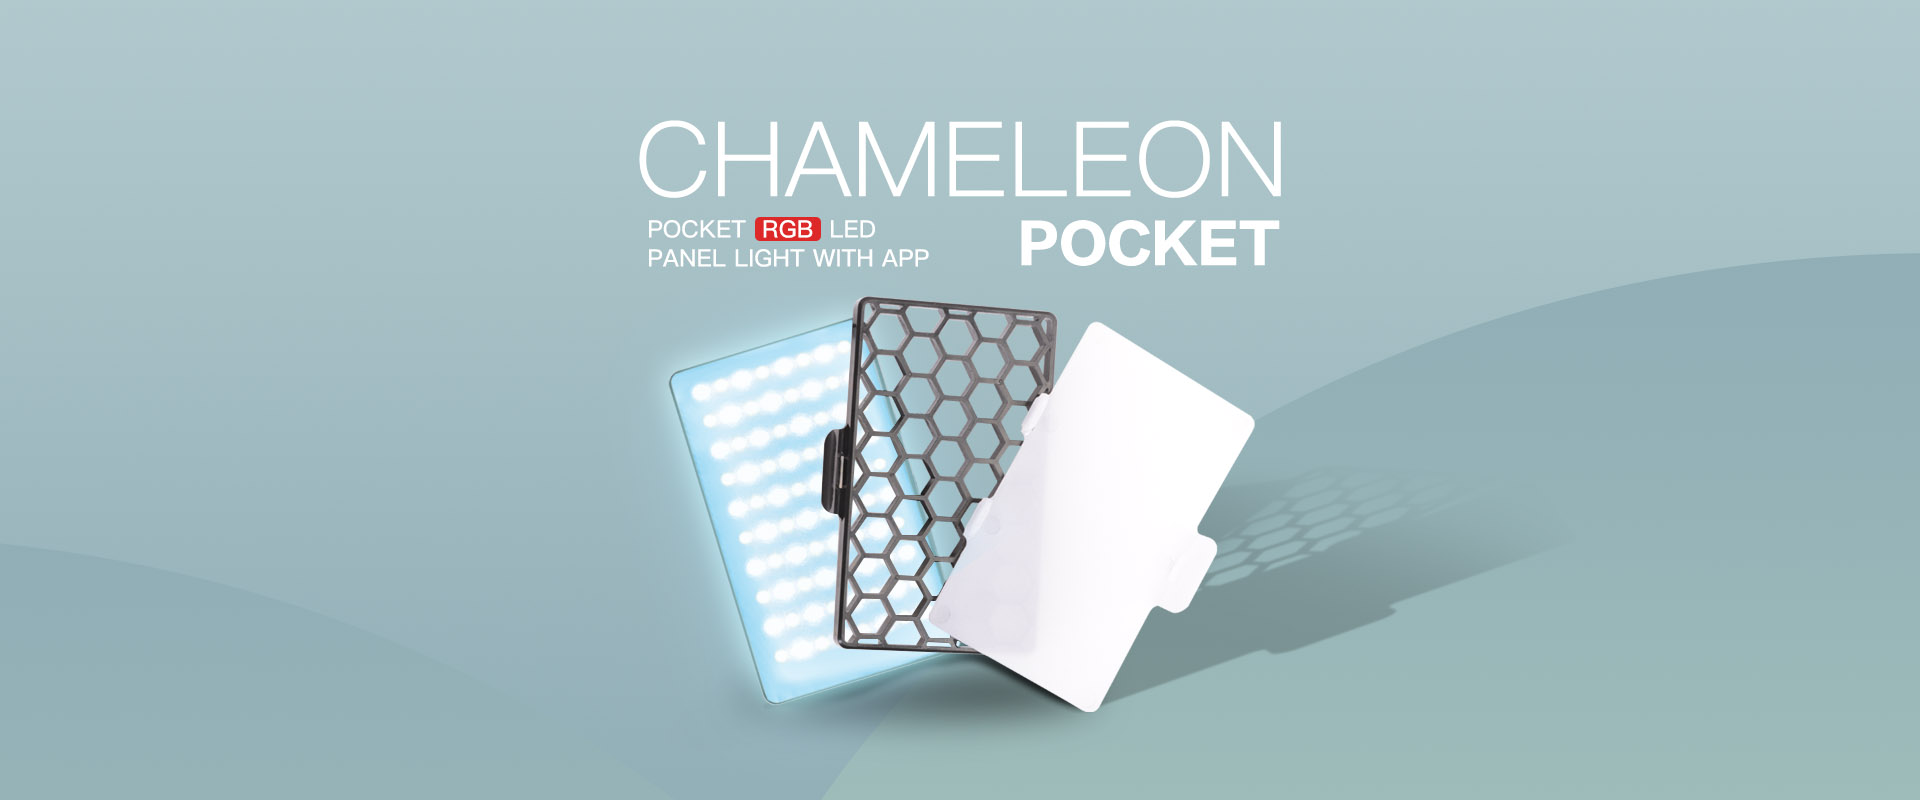 Chameleon Pocket RGB